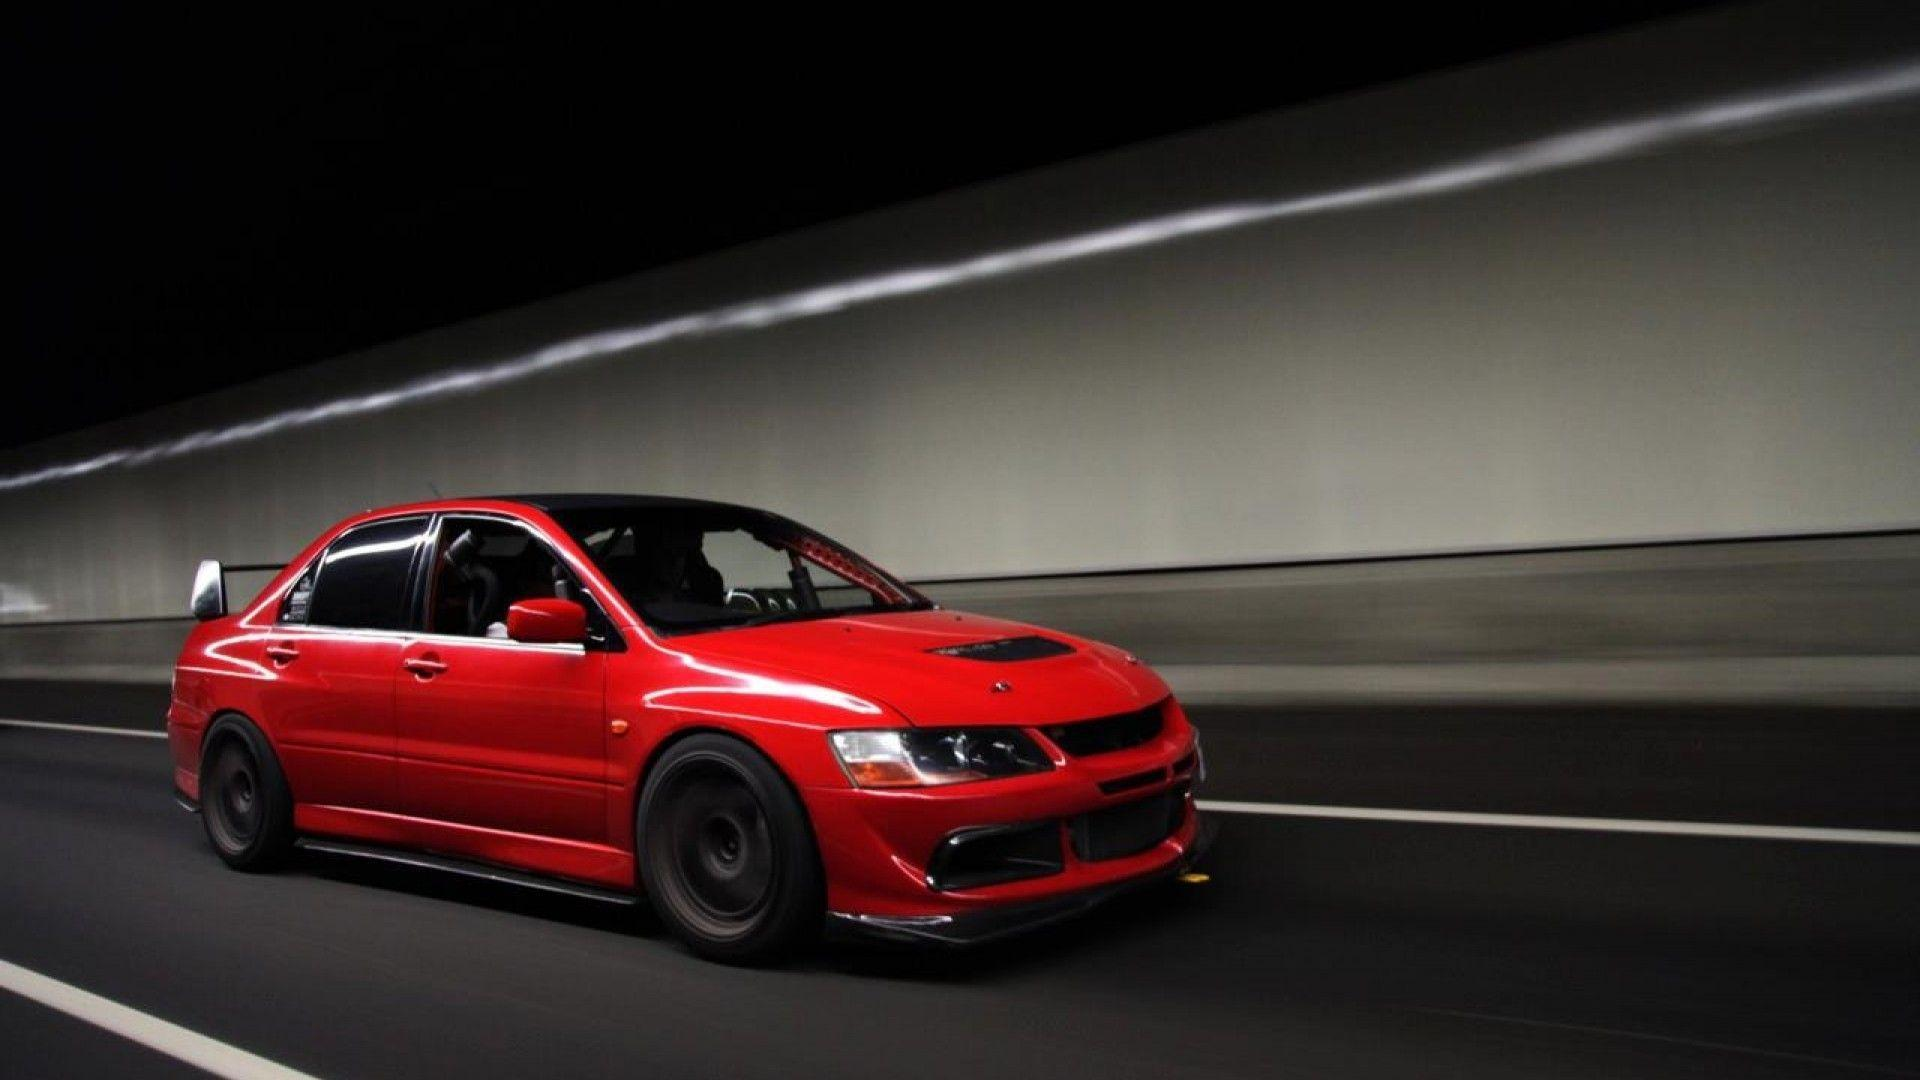 2015 Mitsubishi Lancer SE Limited Wallpapers